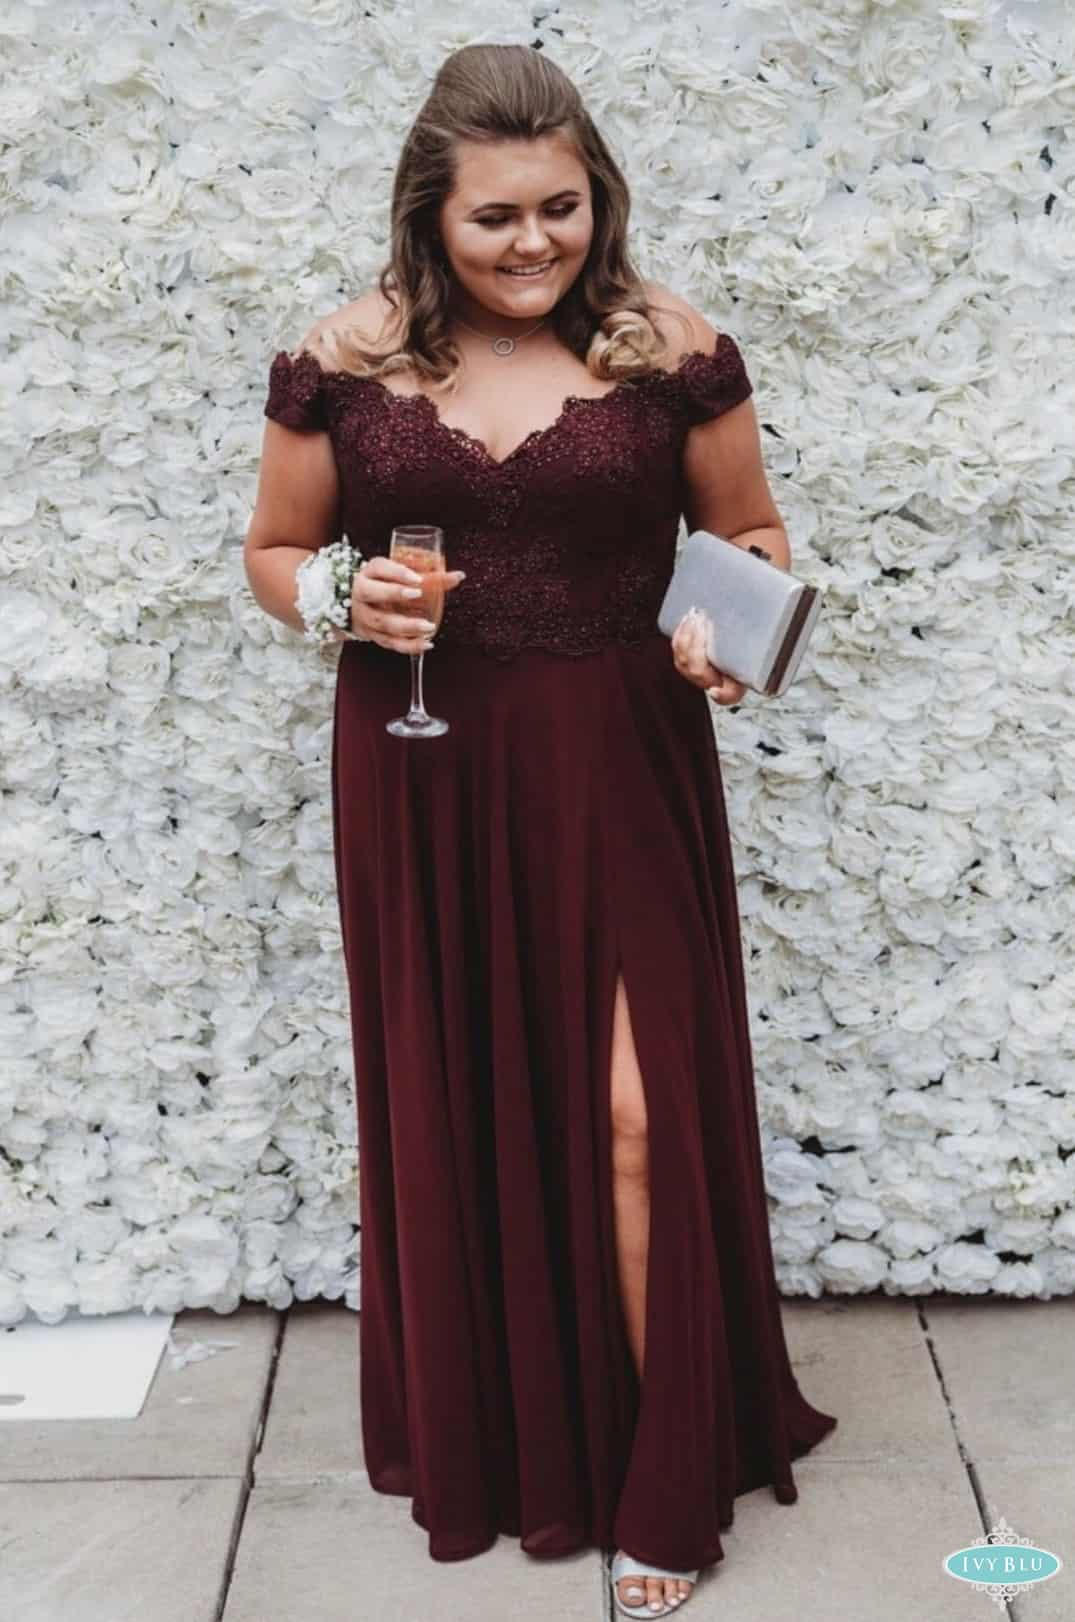 Girl Wearing Wine Dress With Drinking Champagine